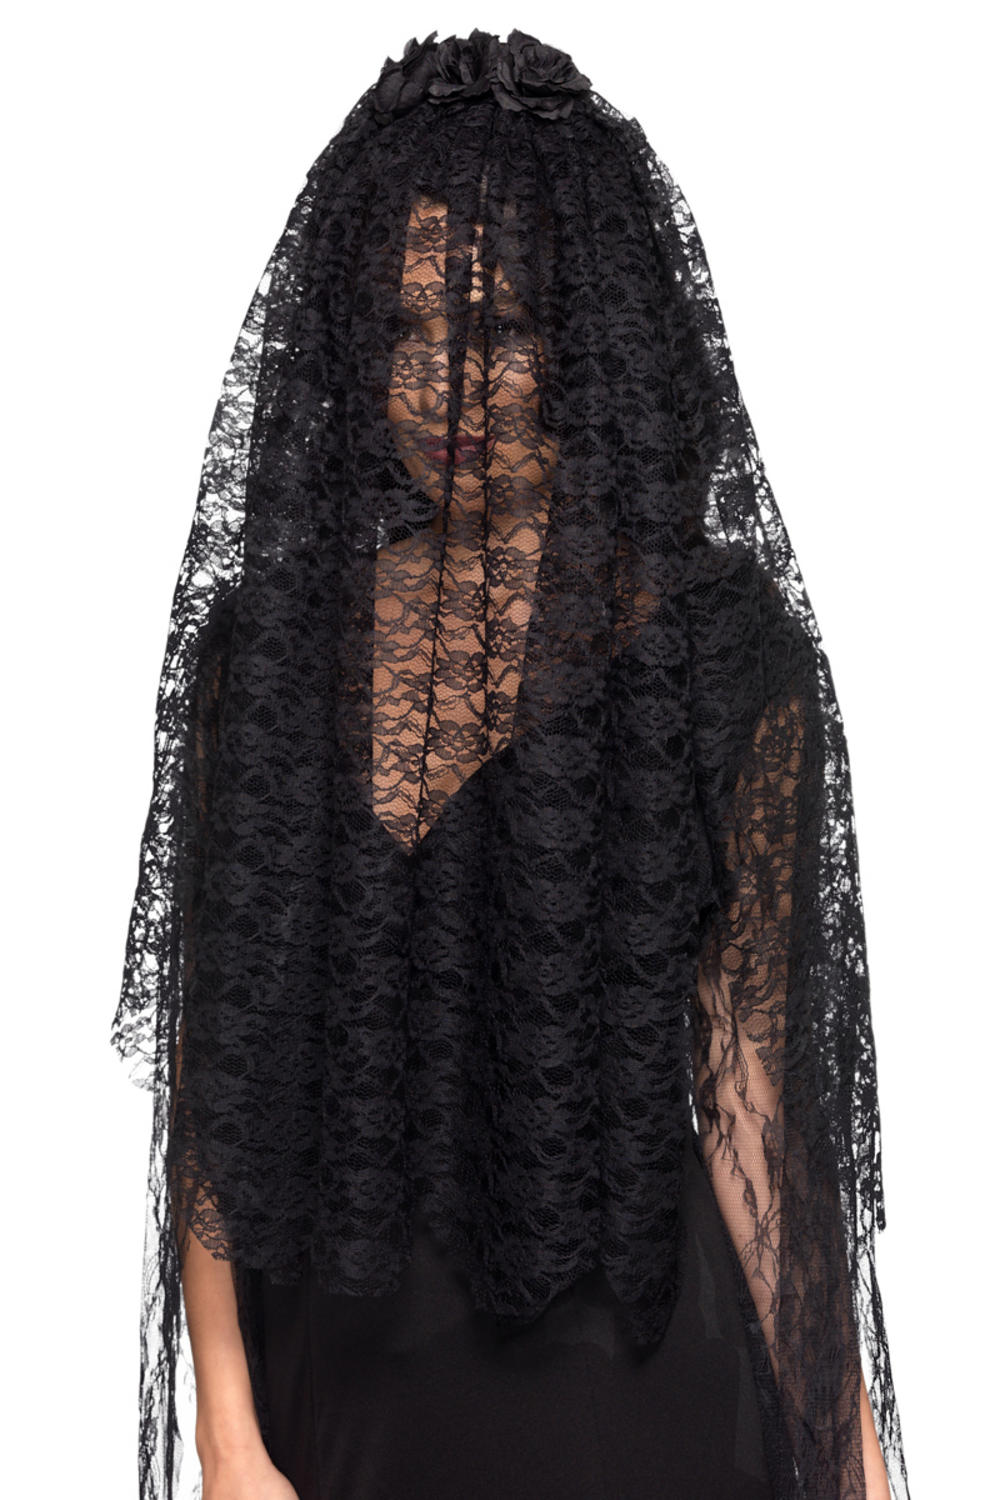 Black Widow Veil Halloween Accessories Mega Fancy Dress